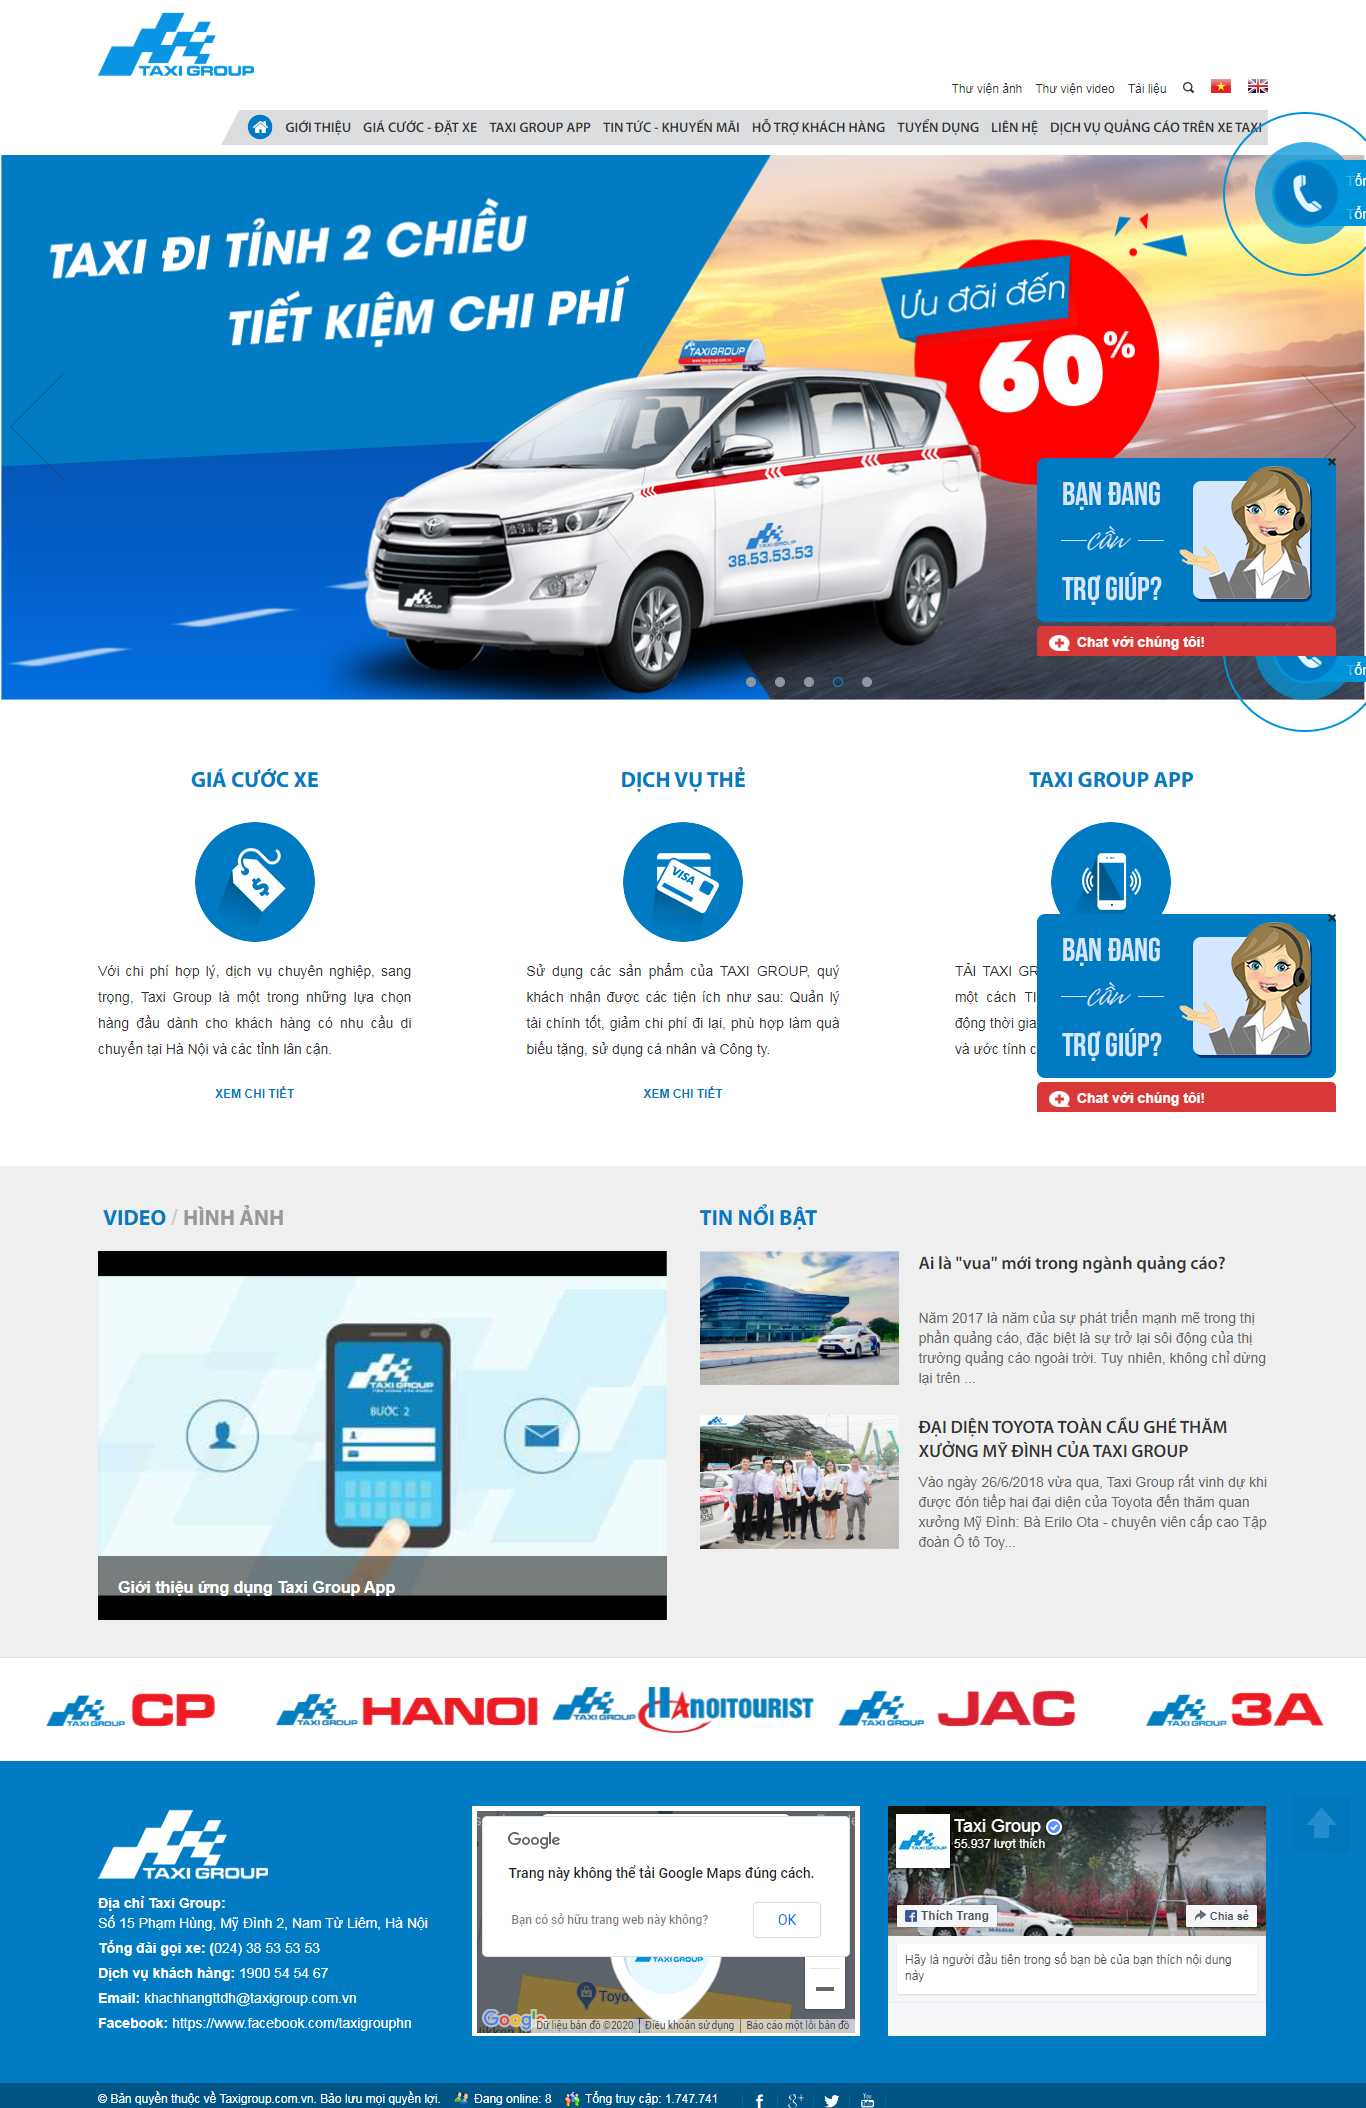 Thiết kế Website hãng taxi - taxigroup.com.vn